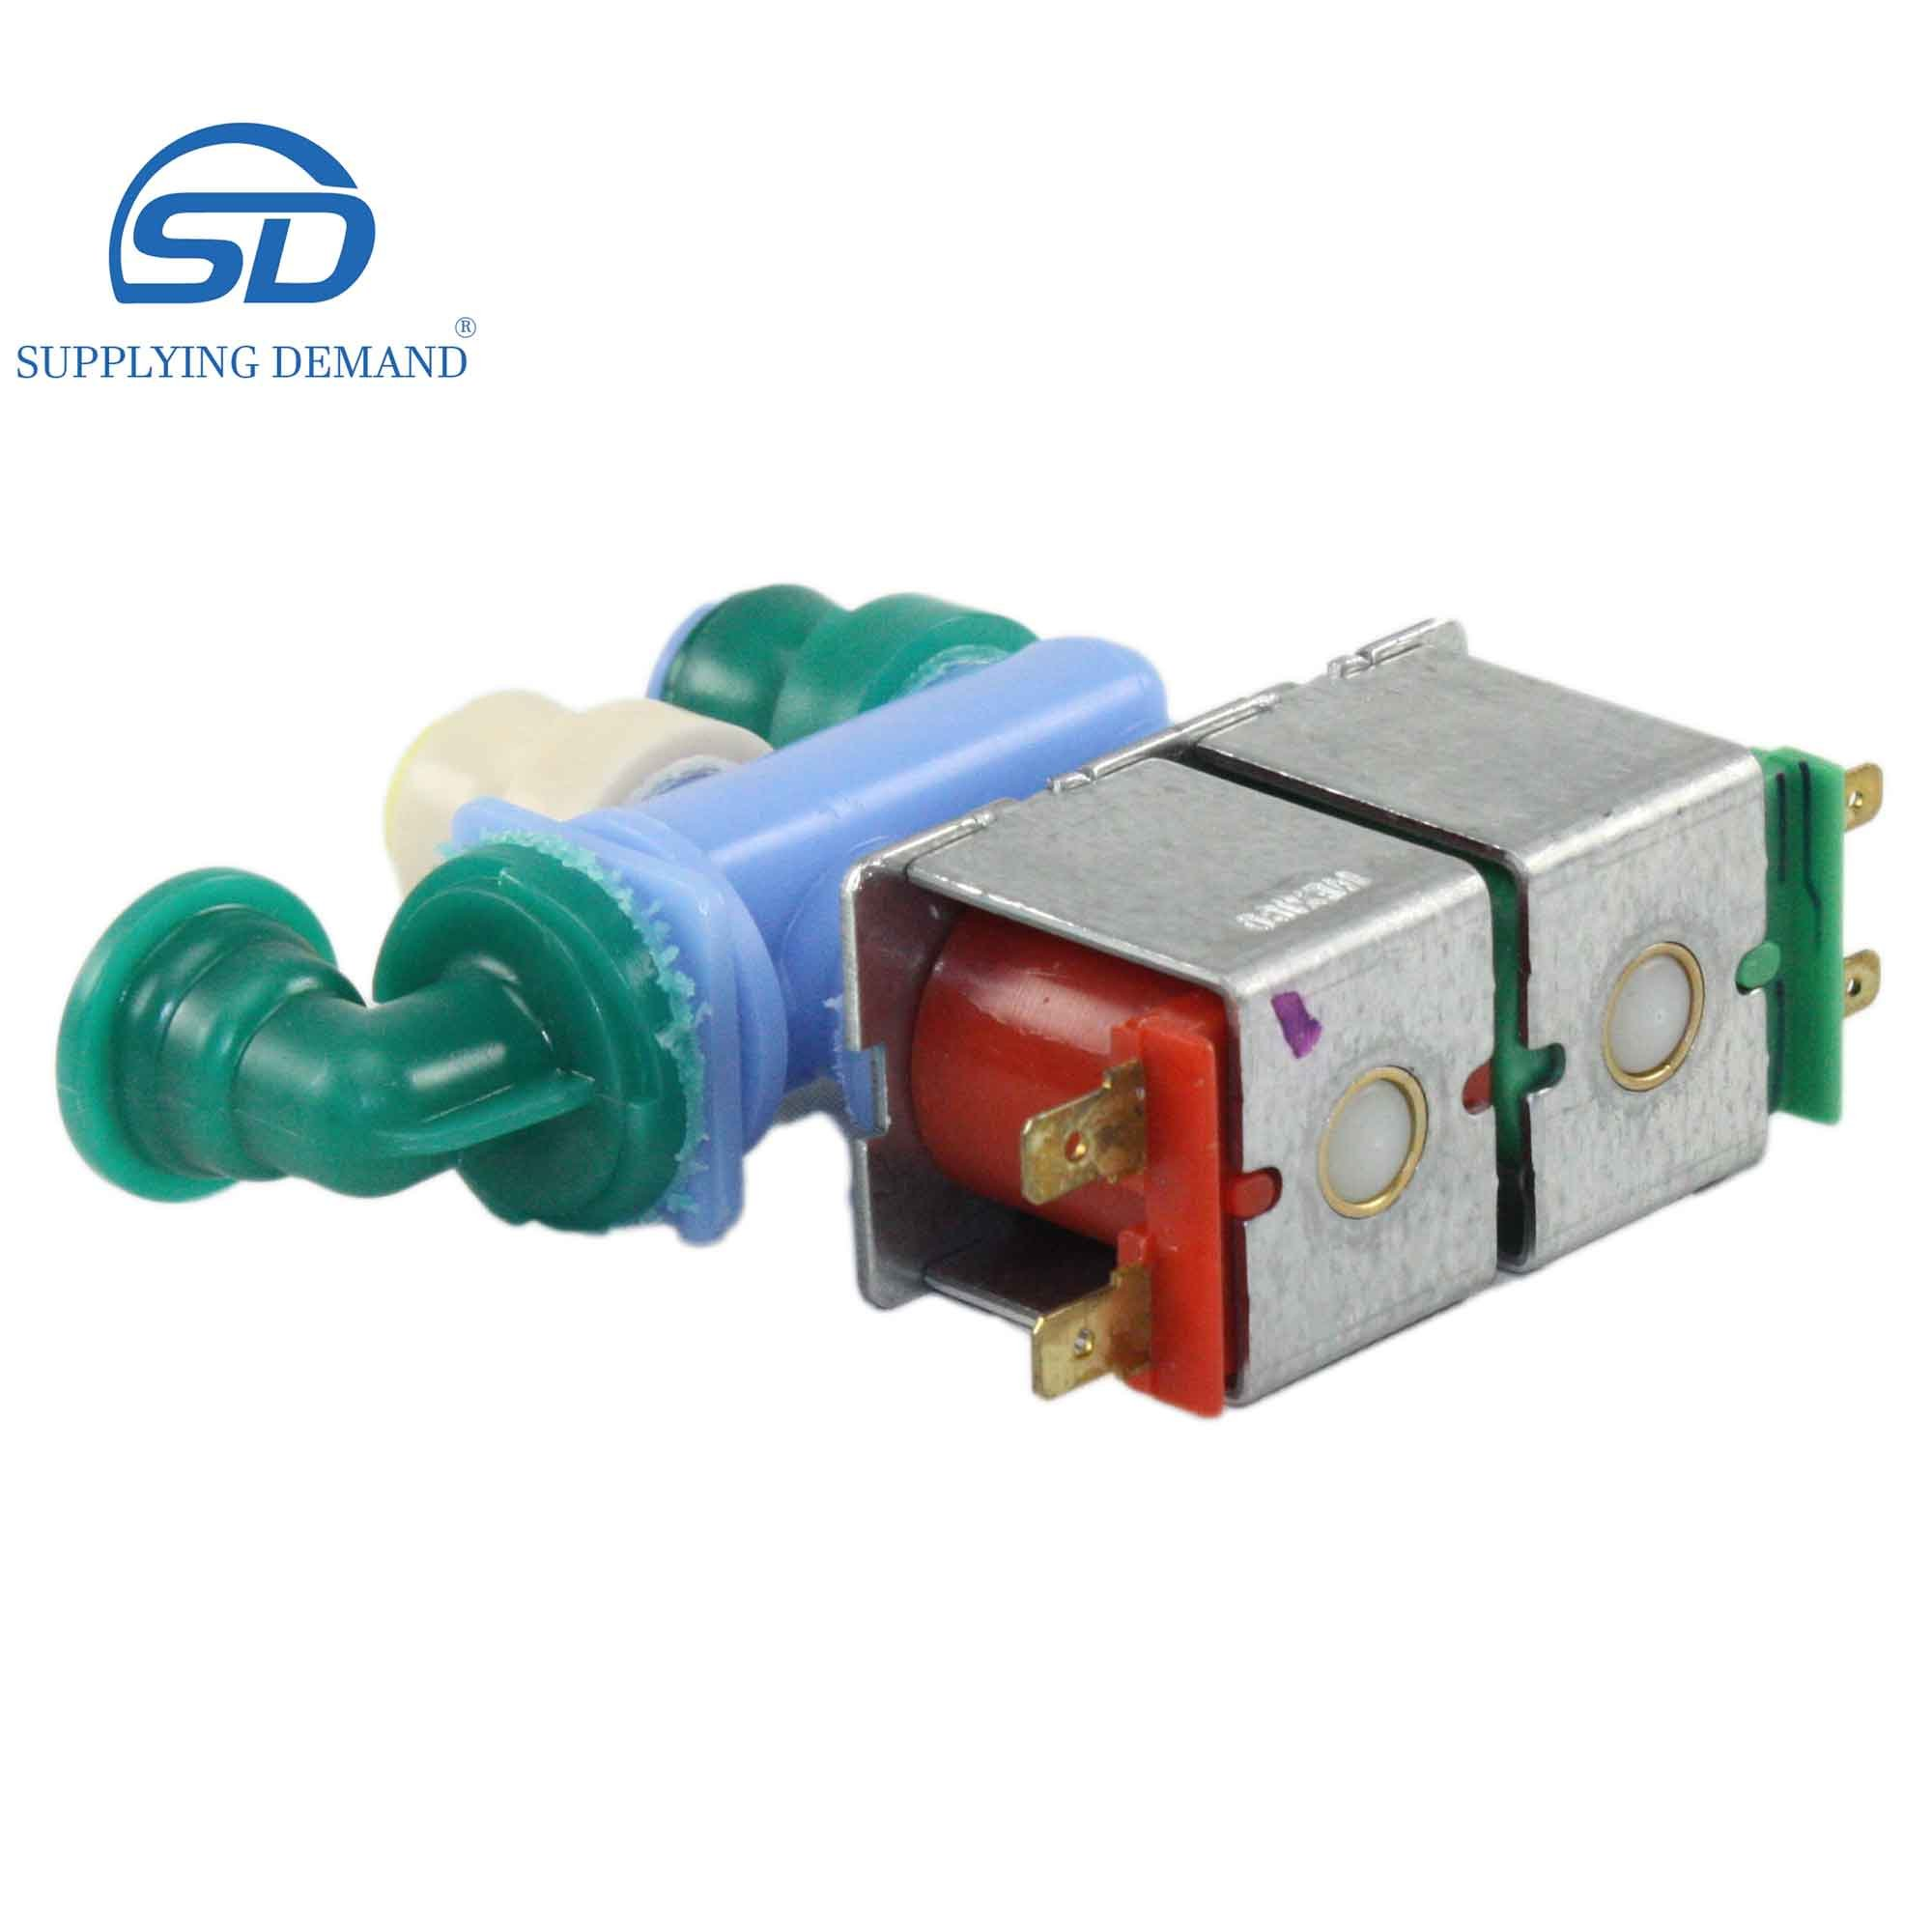 Supplying Demand W10341329 Refrigerator Dual Water Valve Works With AP6019940 by Supplying Demand (Image #5)